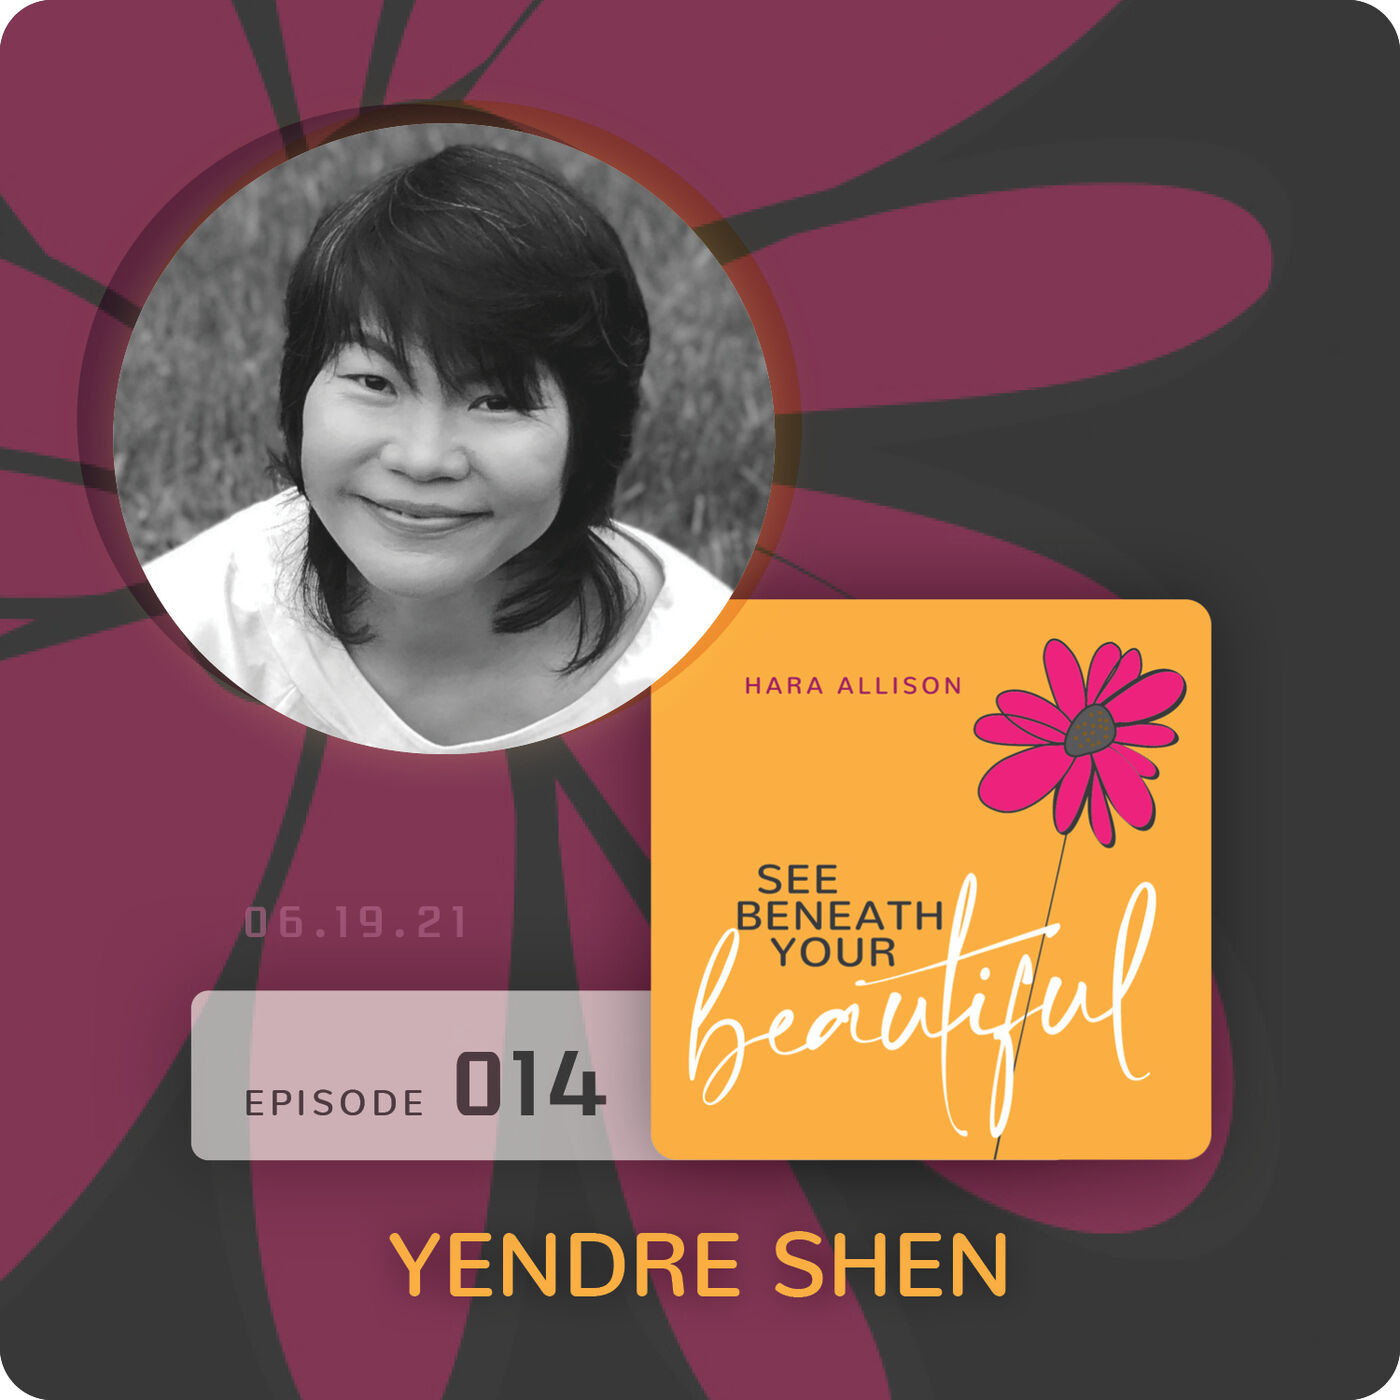 014. Yendre Shen discusses being a naturopathic doctor, intuitive kids and parents, connection, parents granting autonomy, being a good scientist, and healing your childhood trauma by finding the root cause